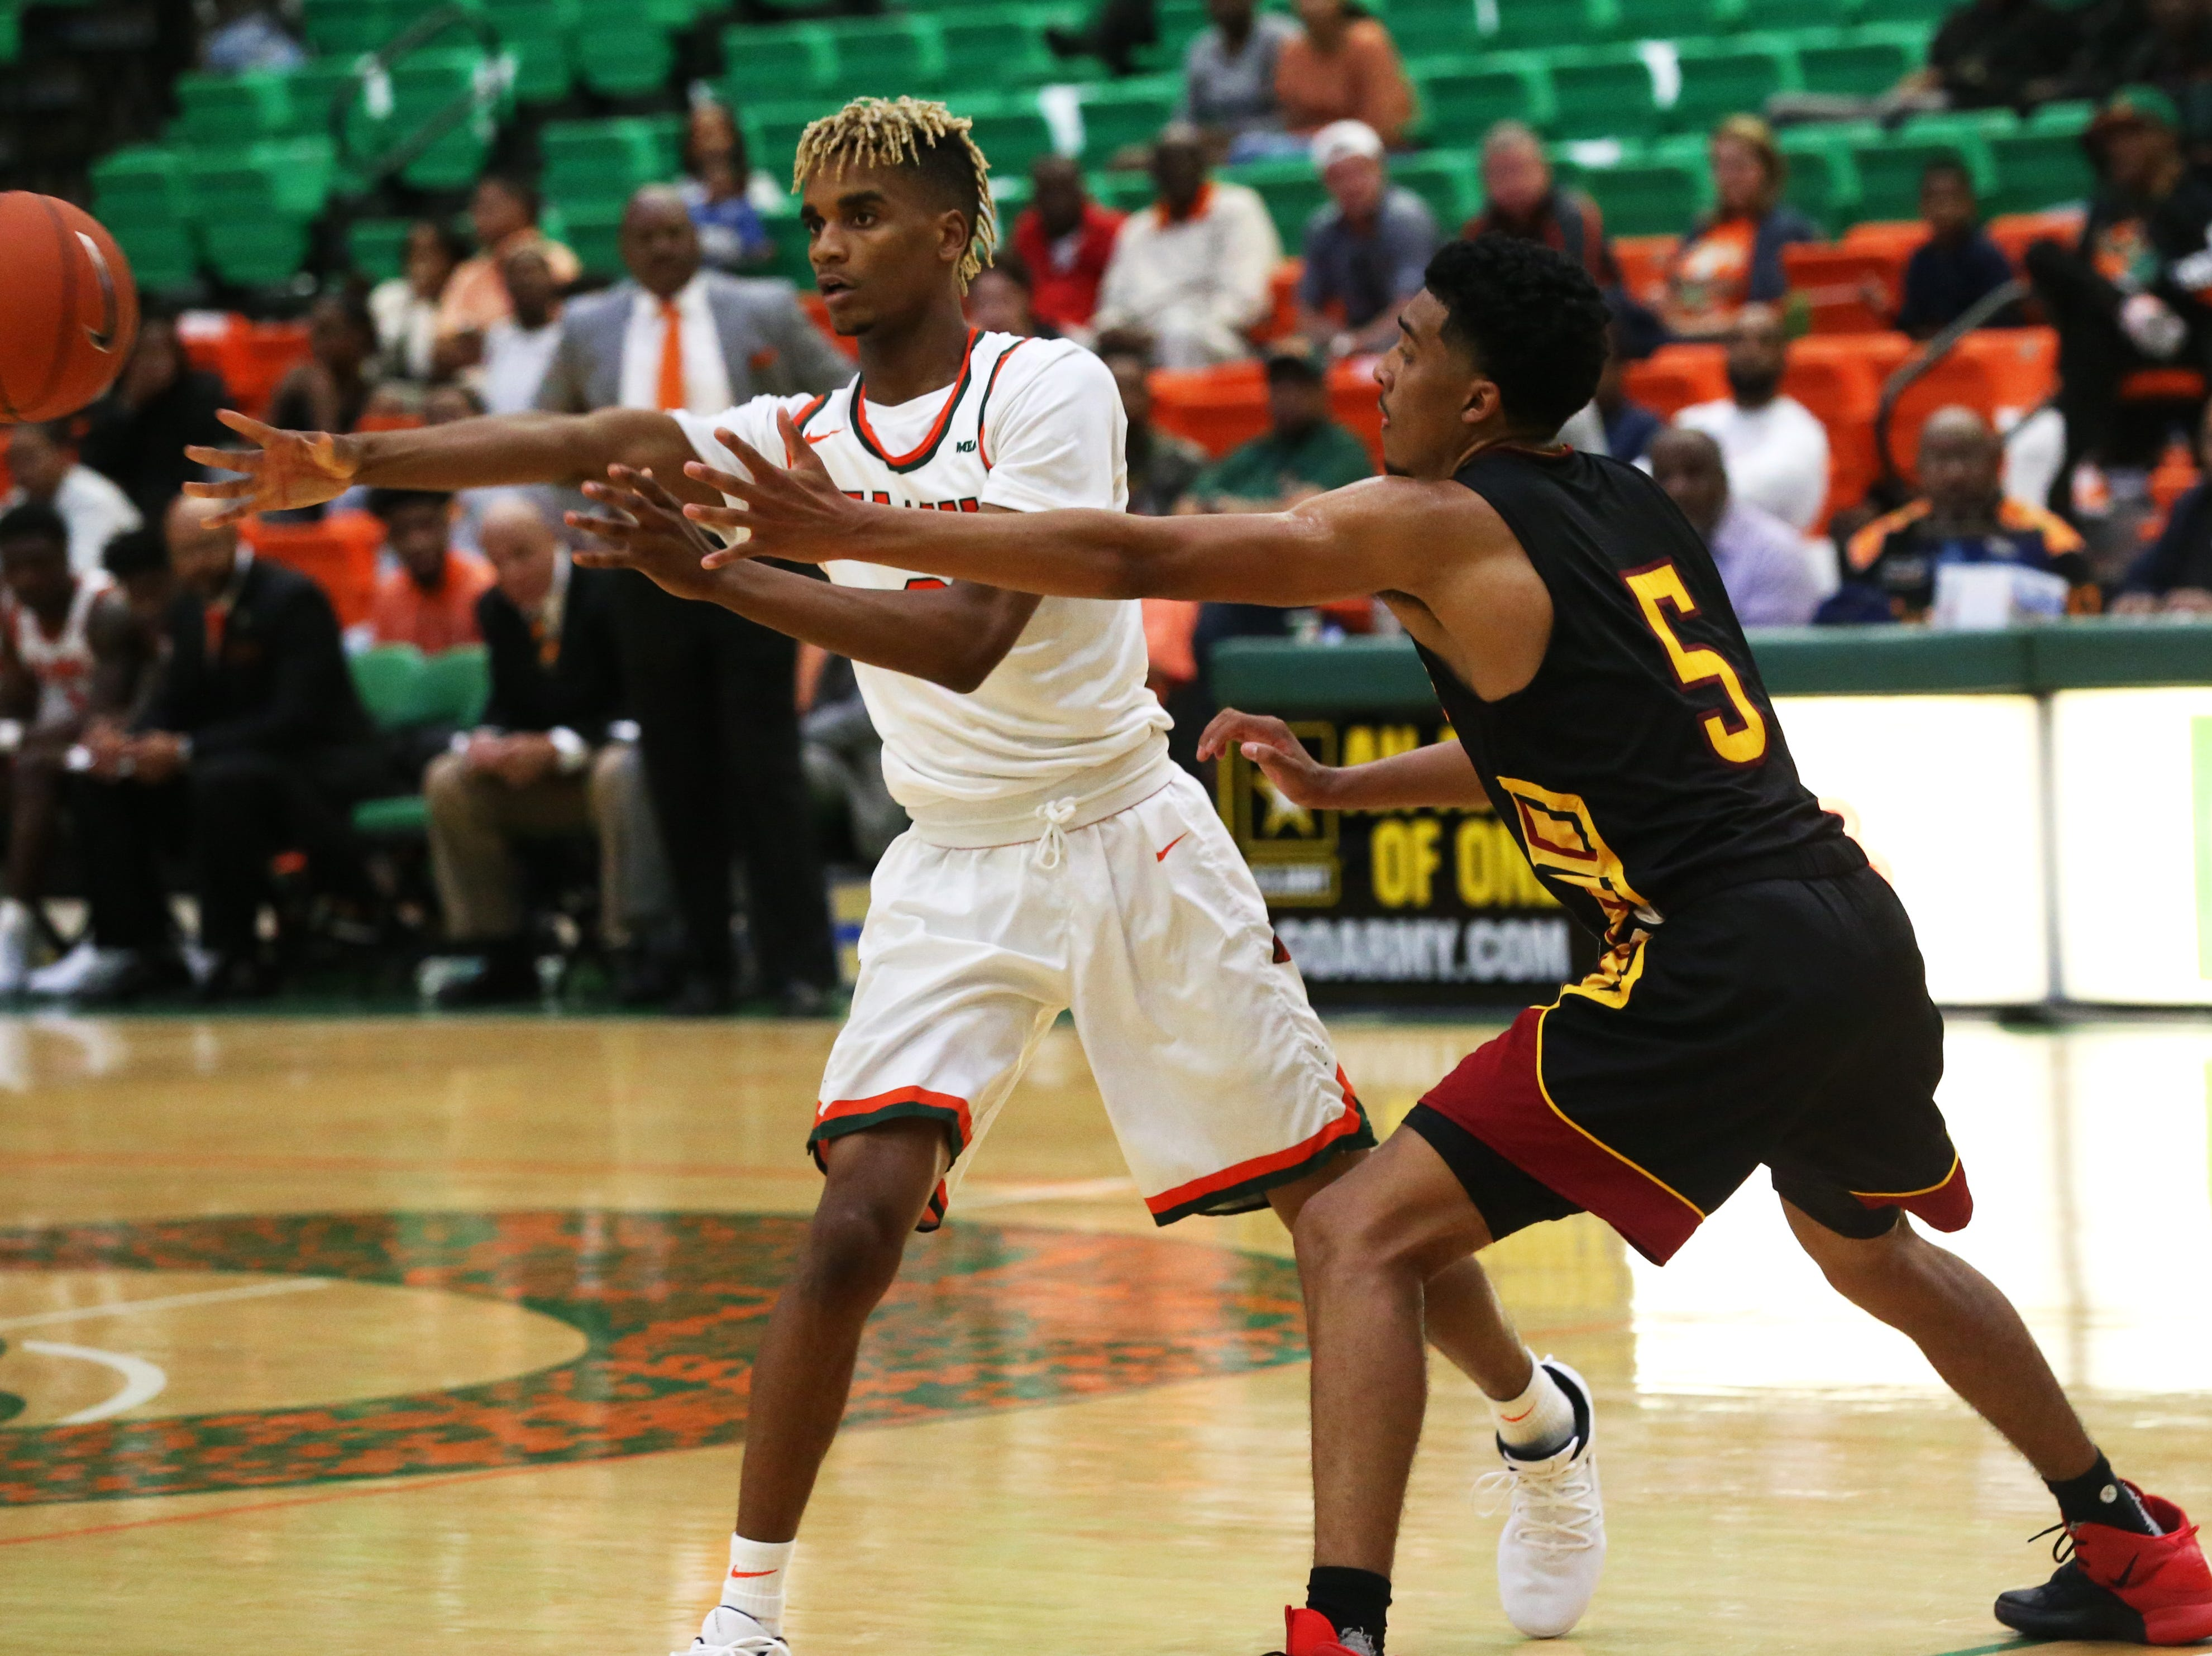 Florida A&M Rattlers guard MJ Randolph (3) passes to a teammate as the FAMU Rattlers take on the Tuskegee Golden Tigers in their first home game of the season in the Lawson Center, Saturday, Nov. 10, 2018.